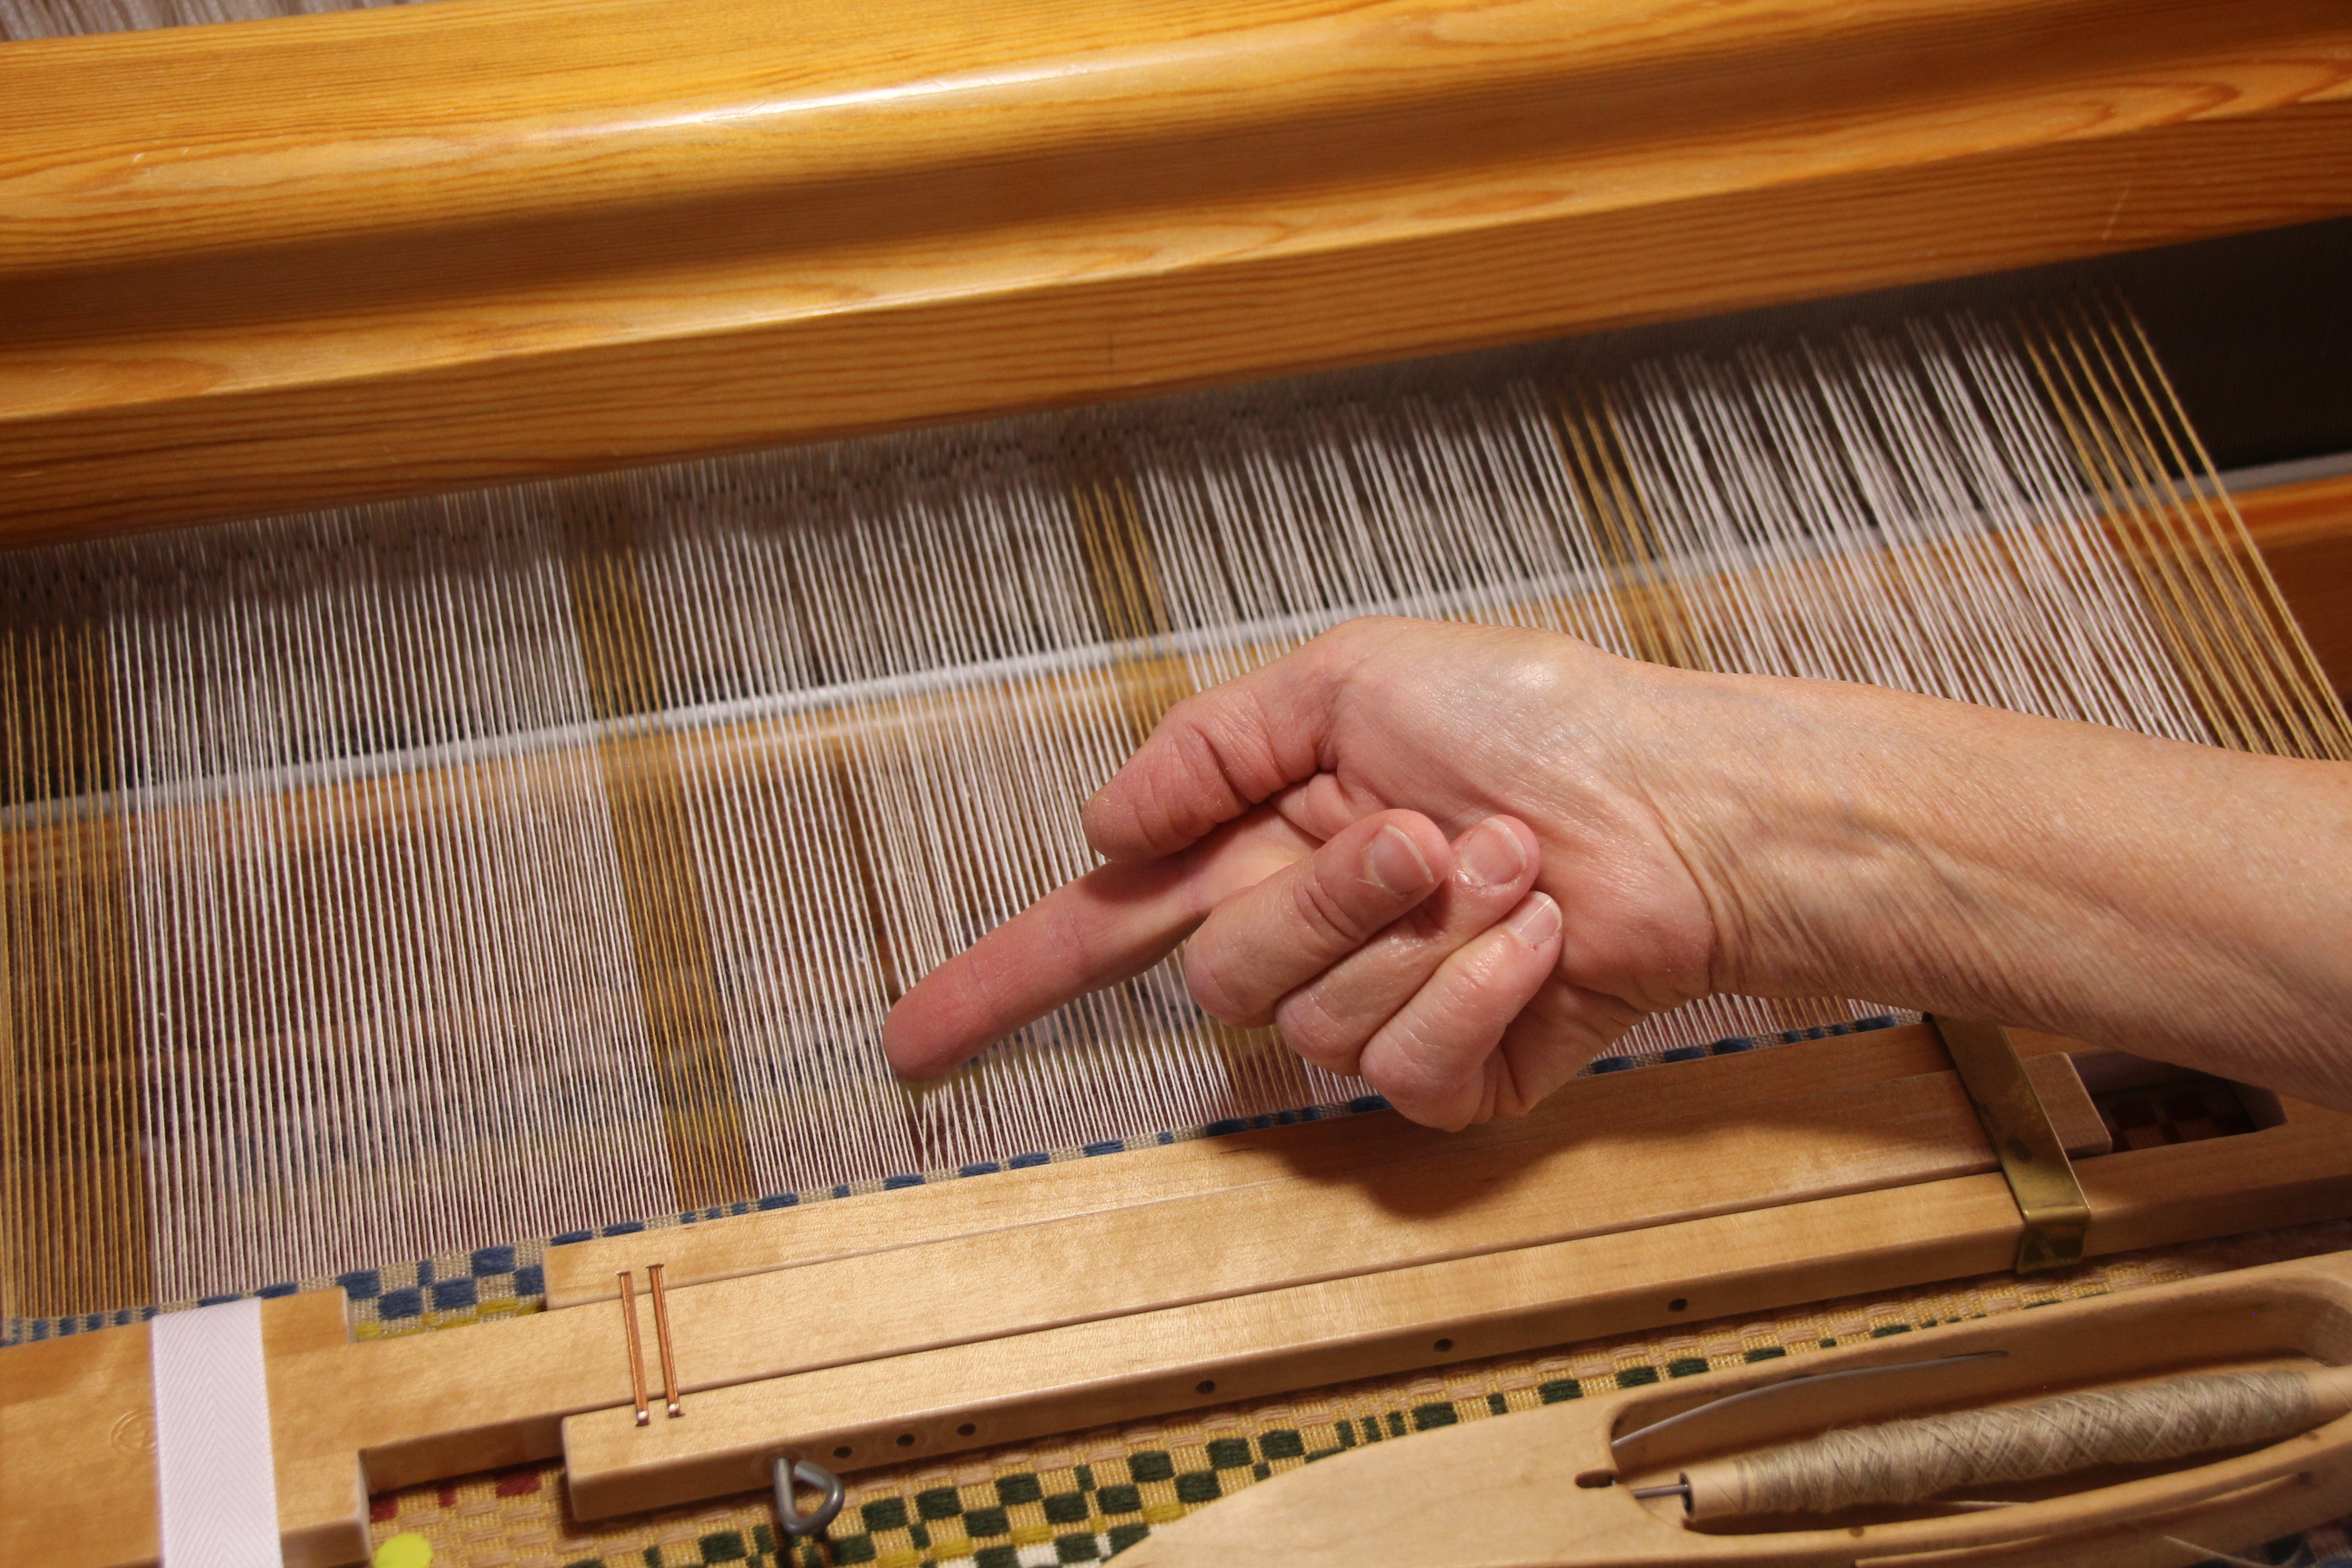 Weft Rep - How to, and simplified.